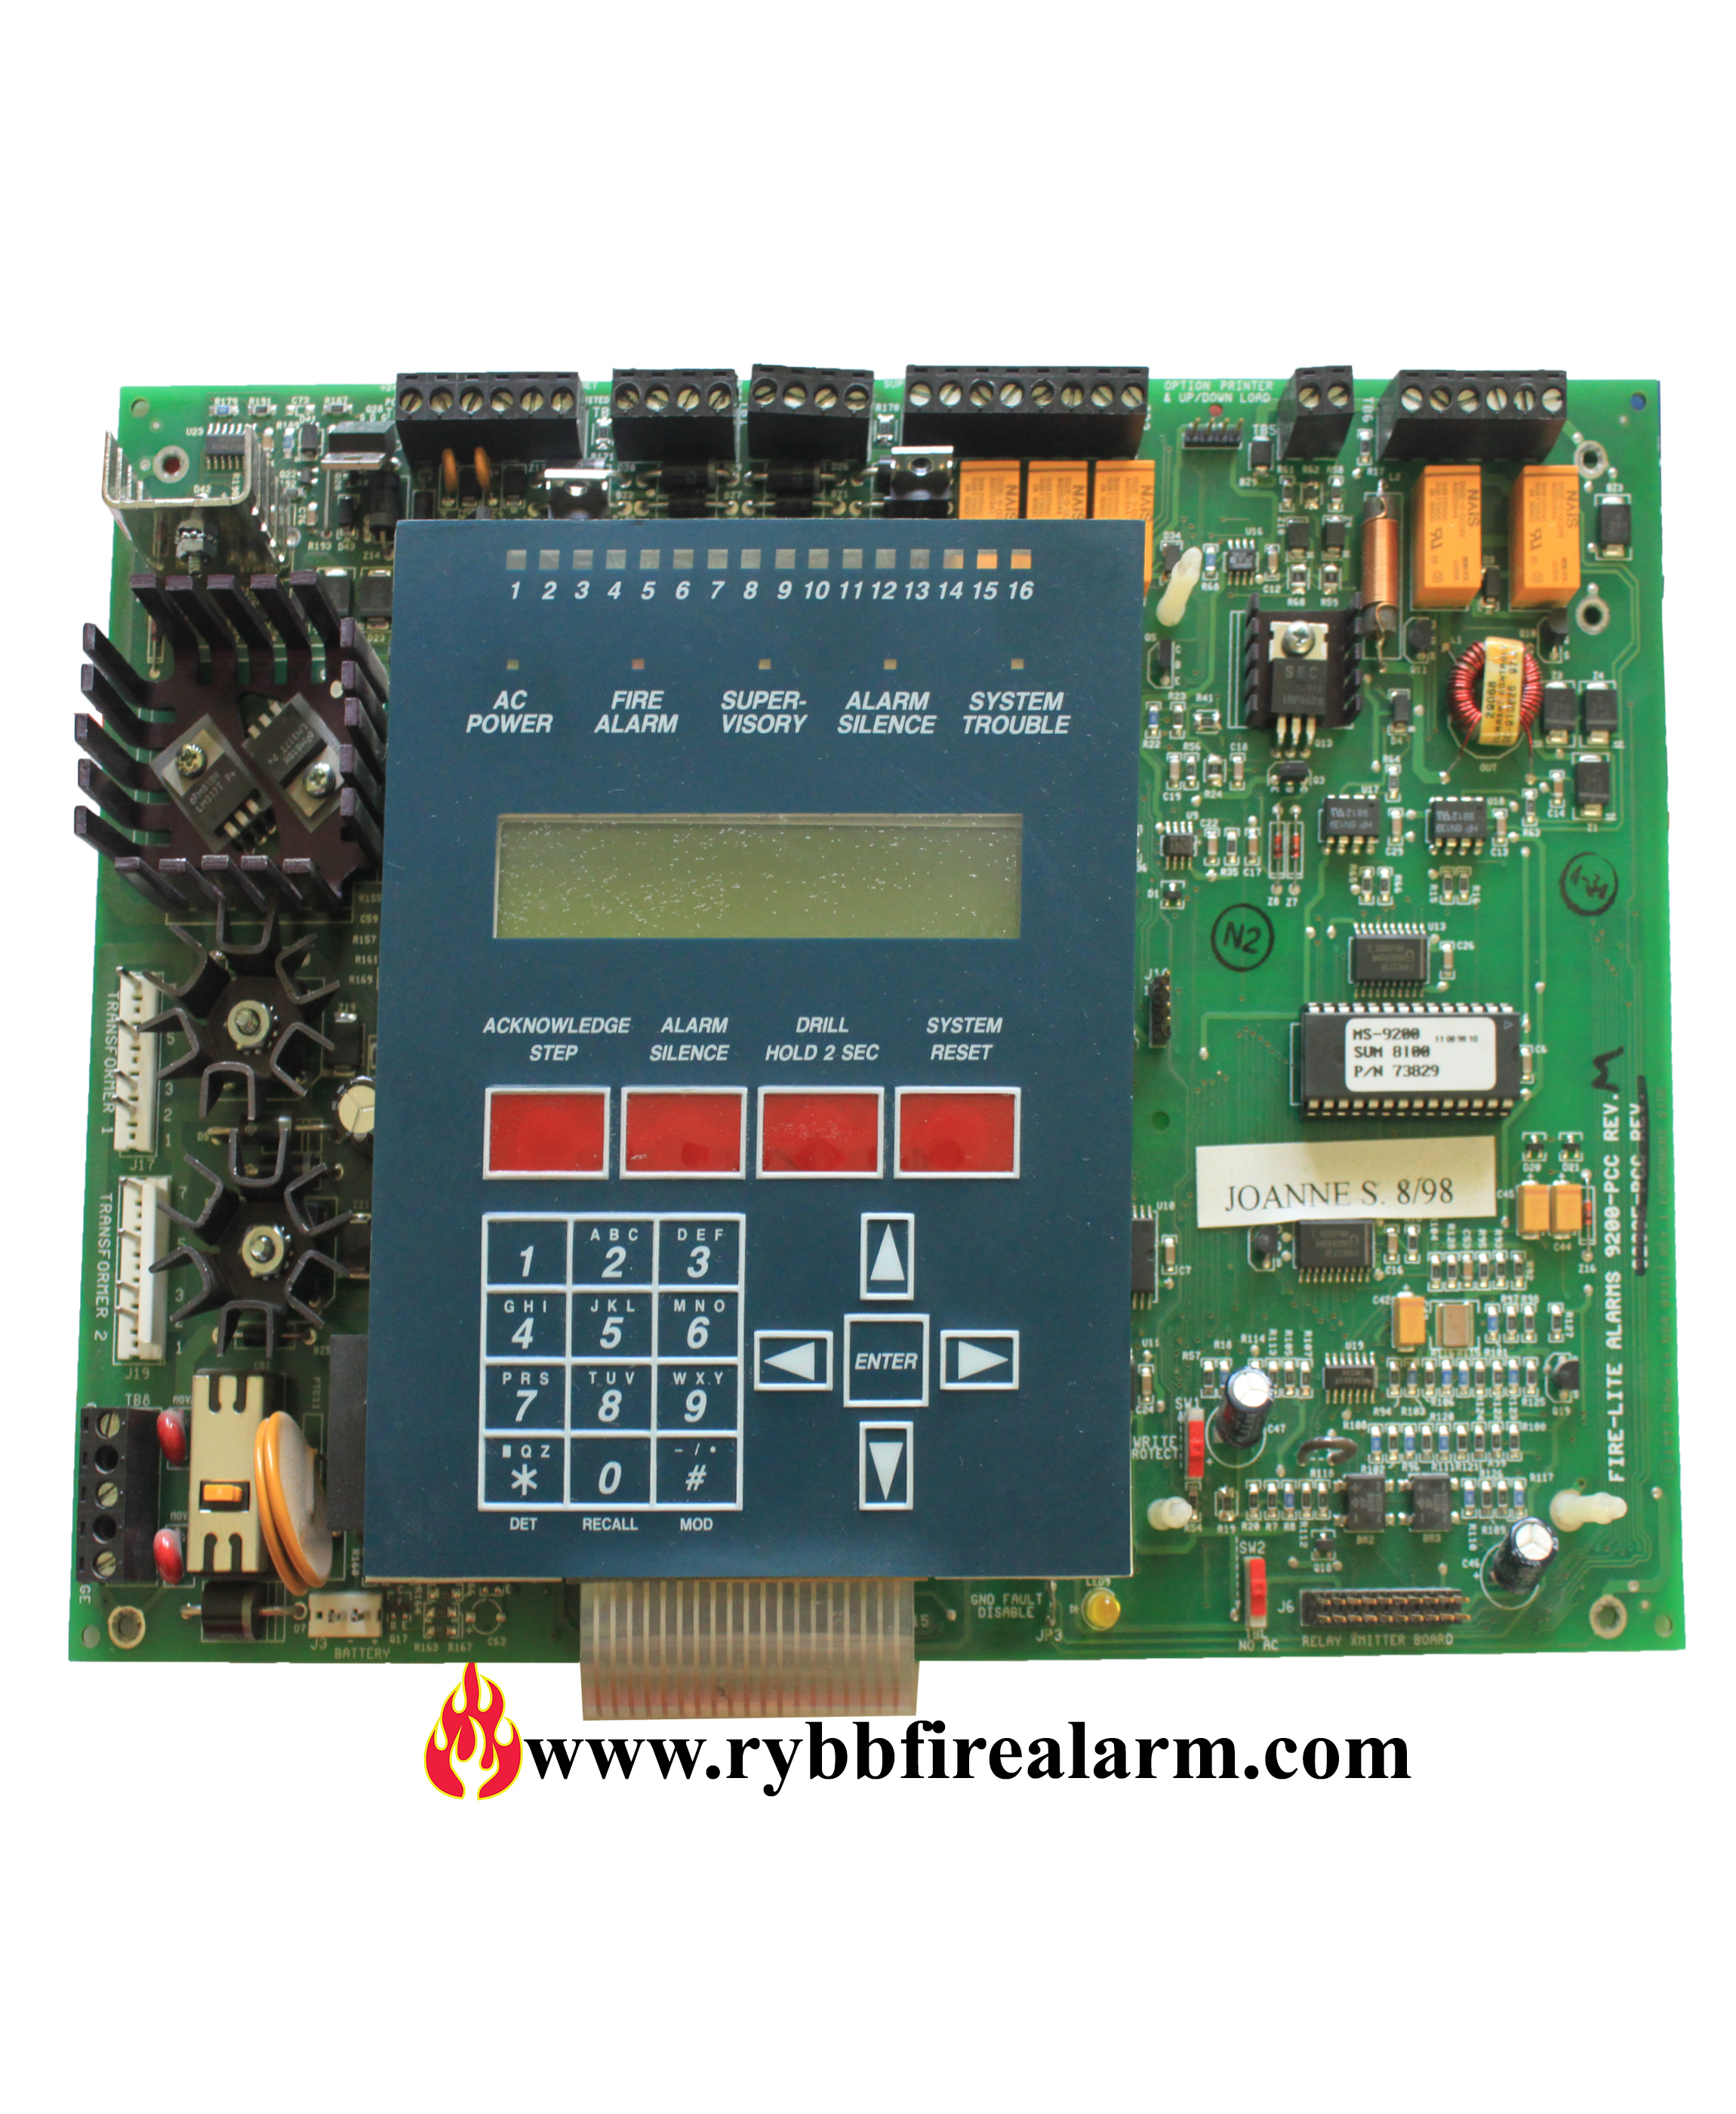 Details about Fire-Lite MS-9200 Fire Alarm Control Panel Replacement Board  (Old Style)